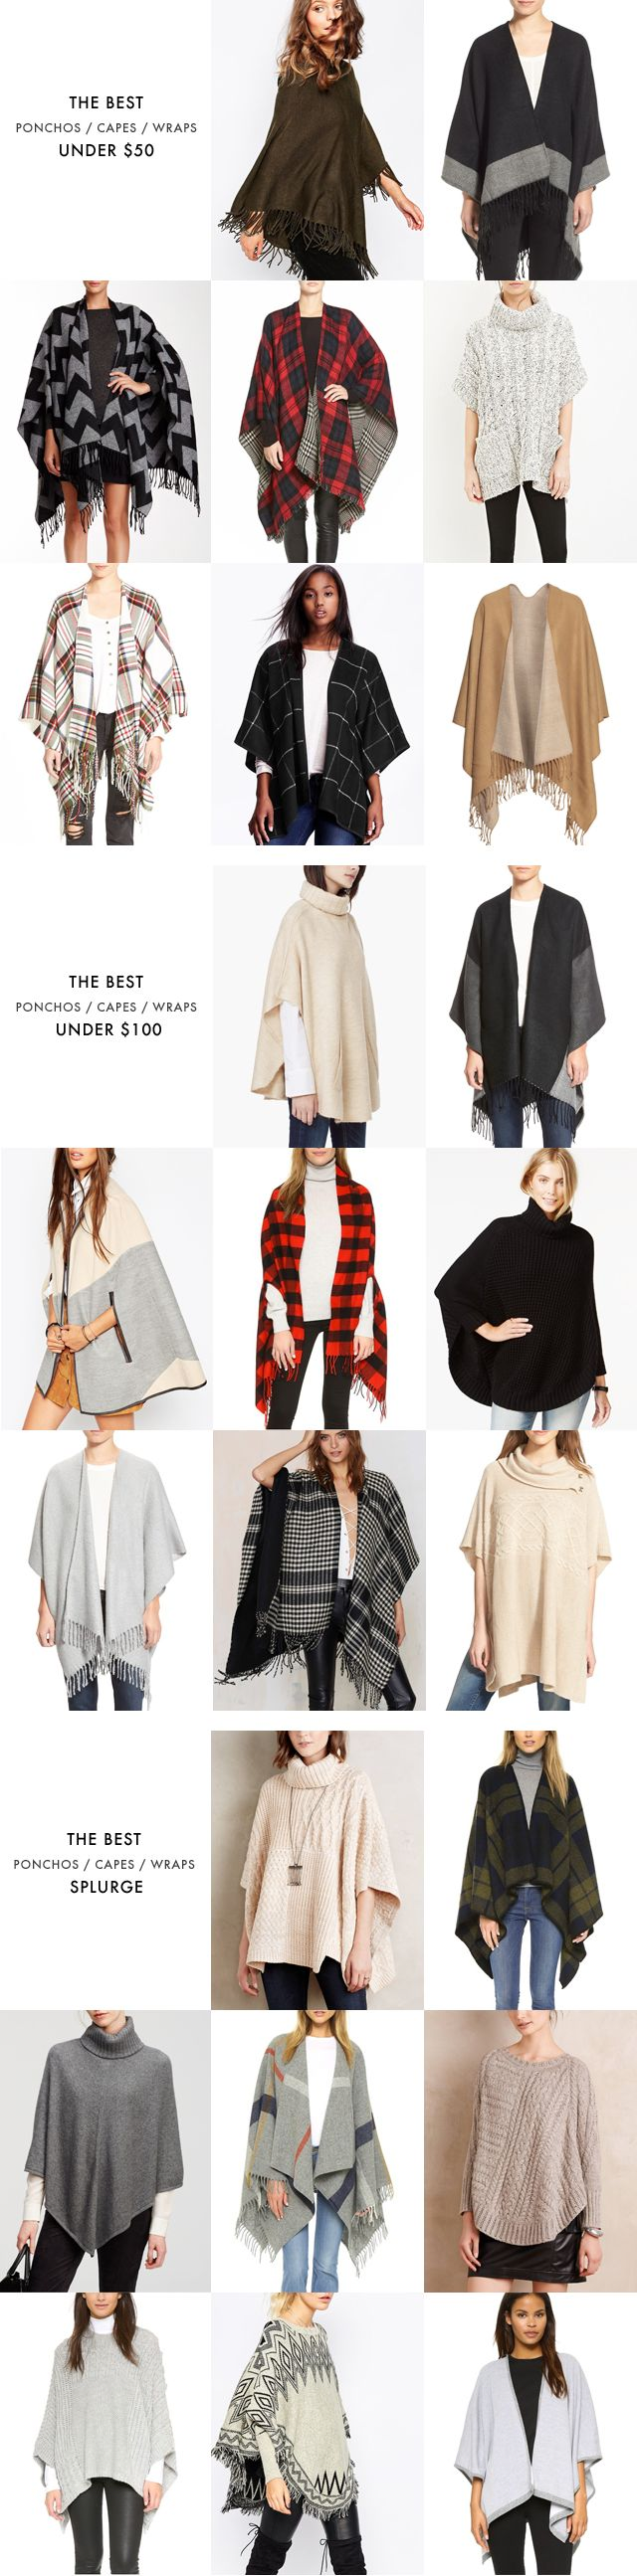 The best ponchos / capes / wraps at every price